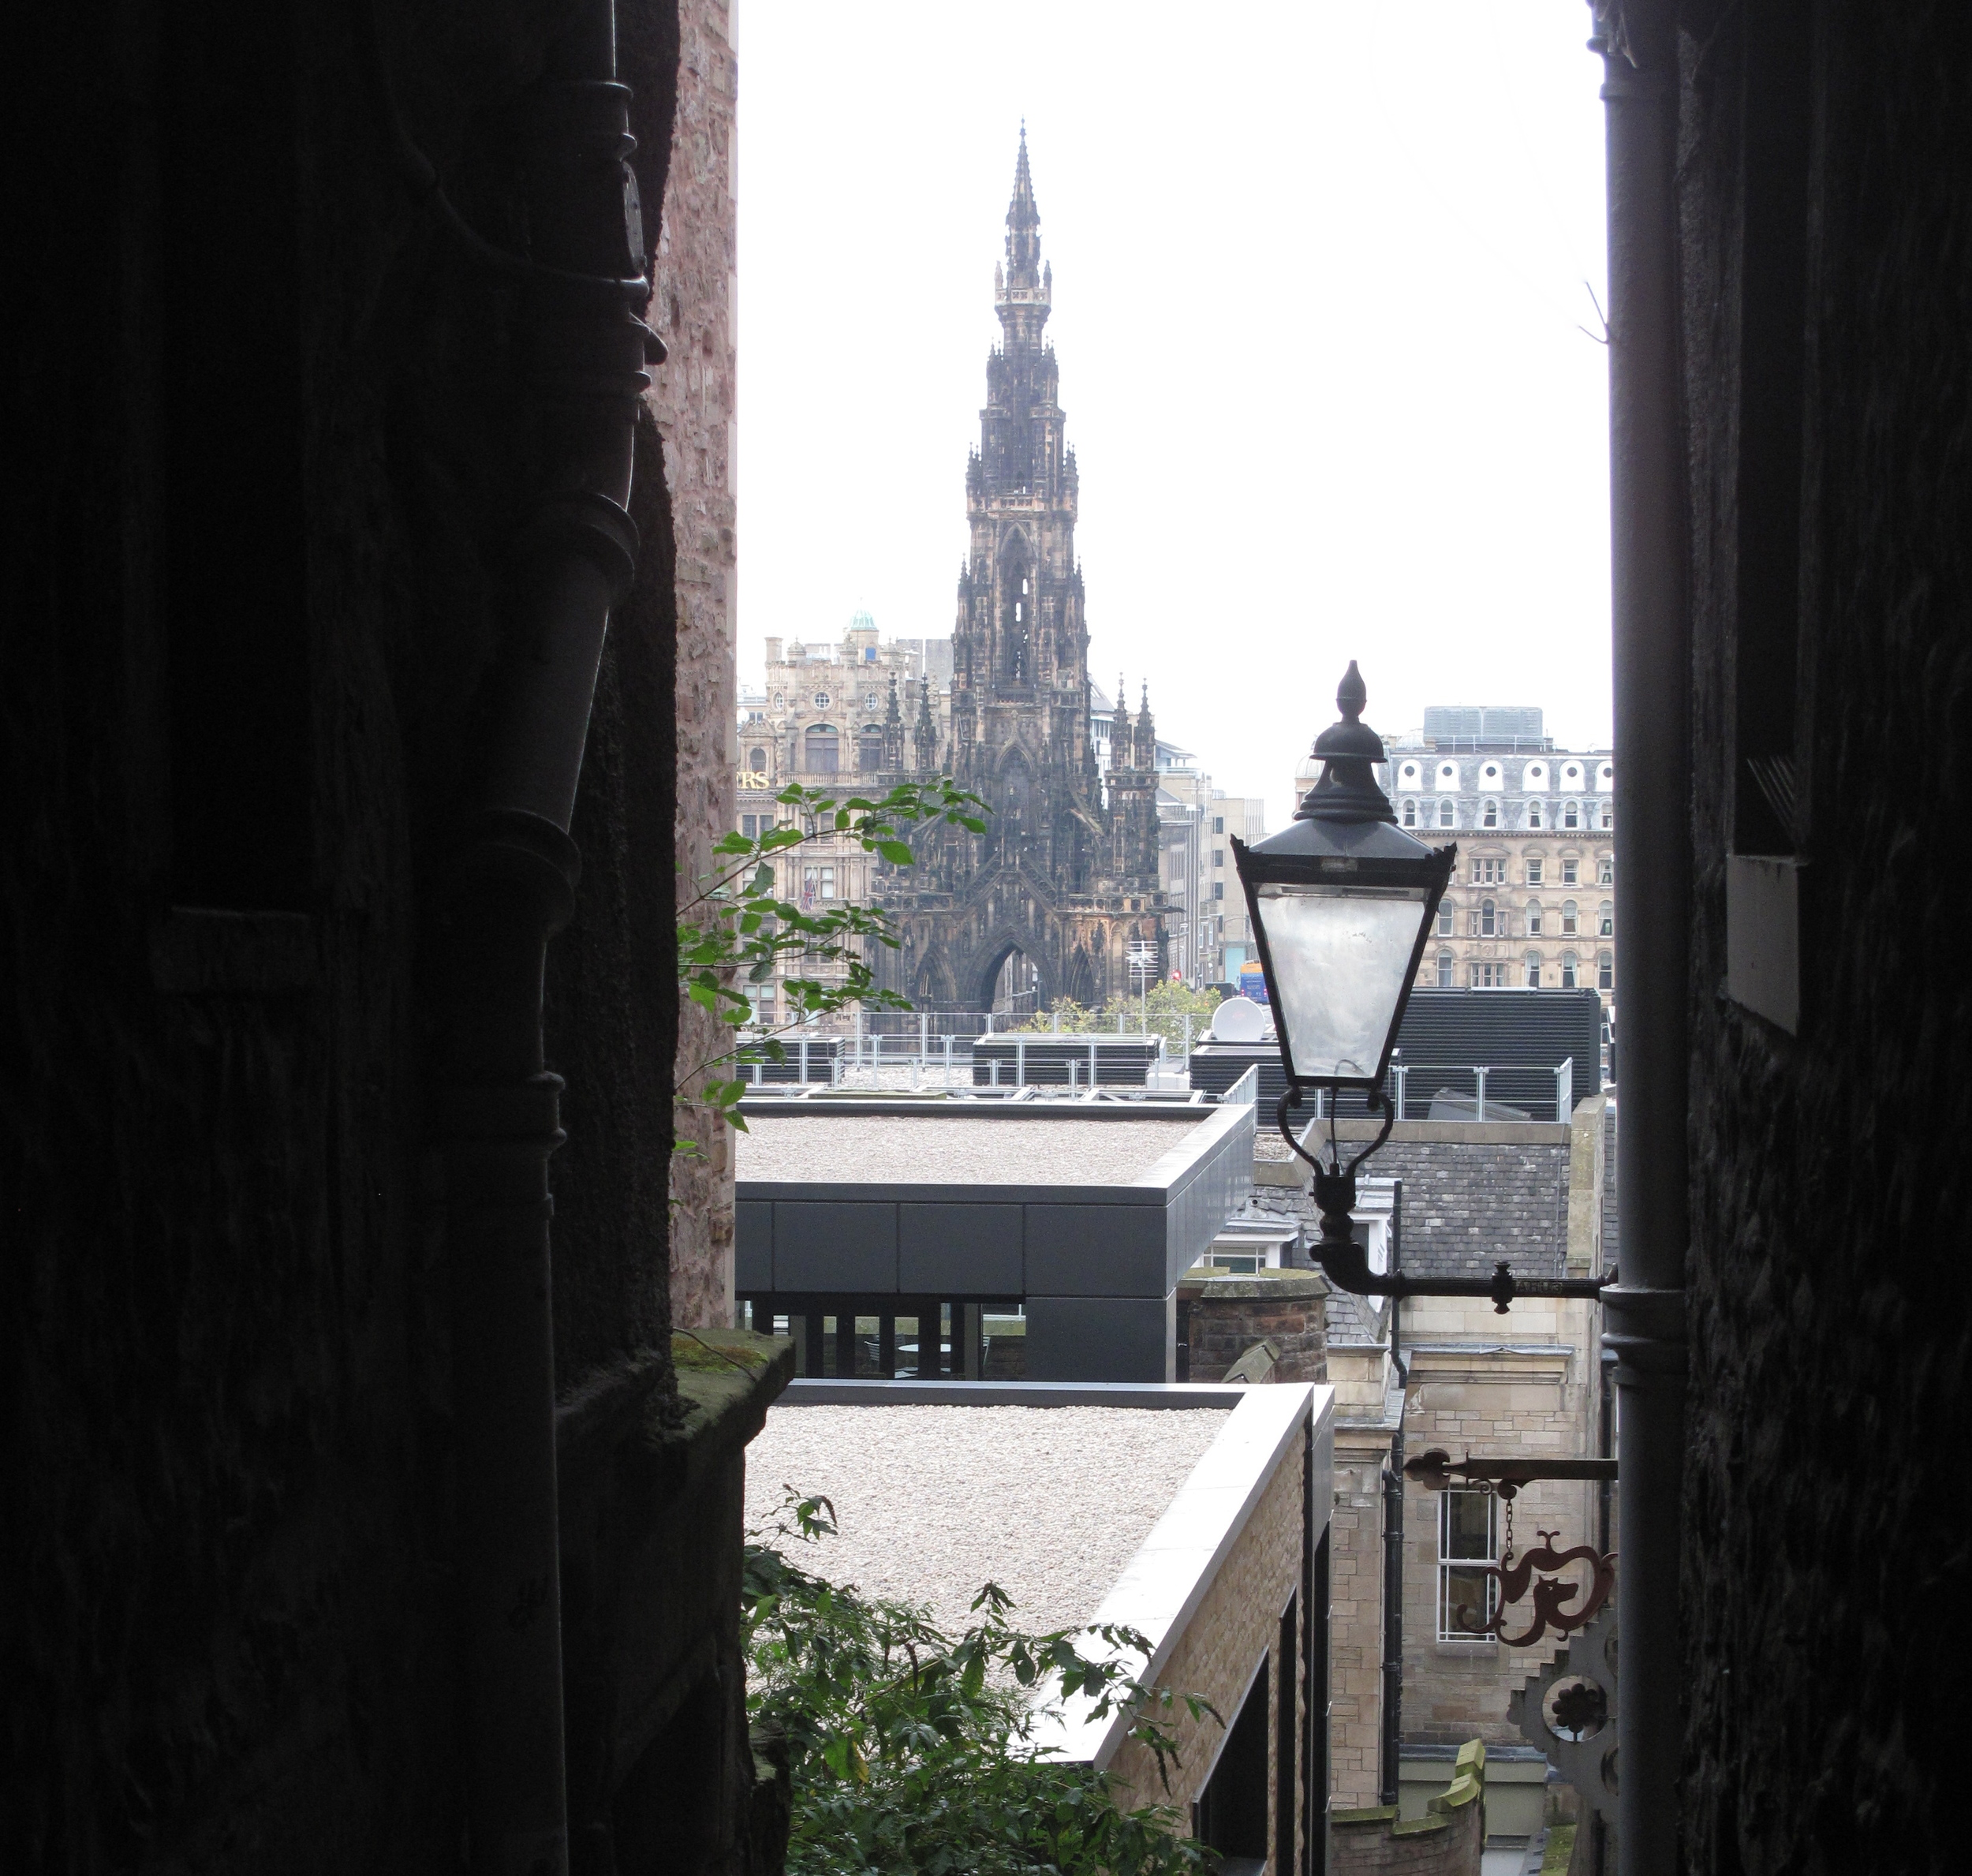 A secret passage or 'wynd' in the Old Town of Edinburgh.